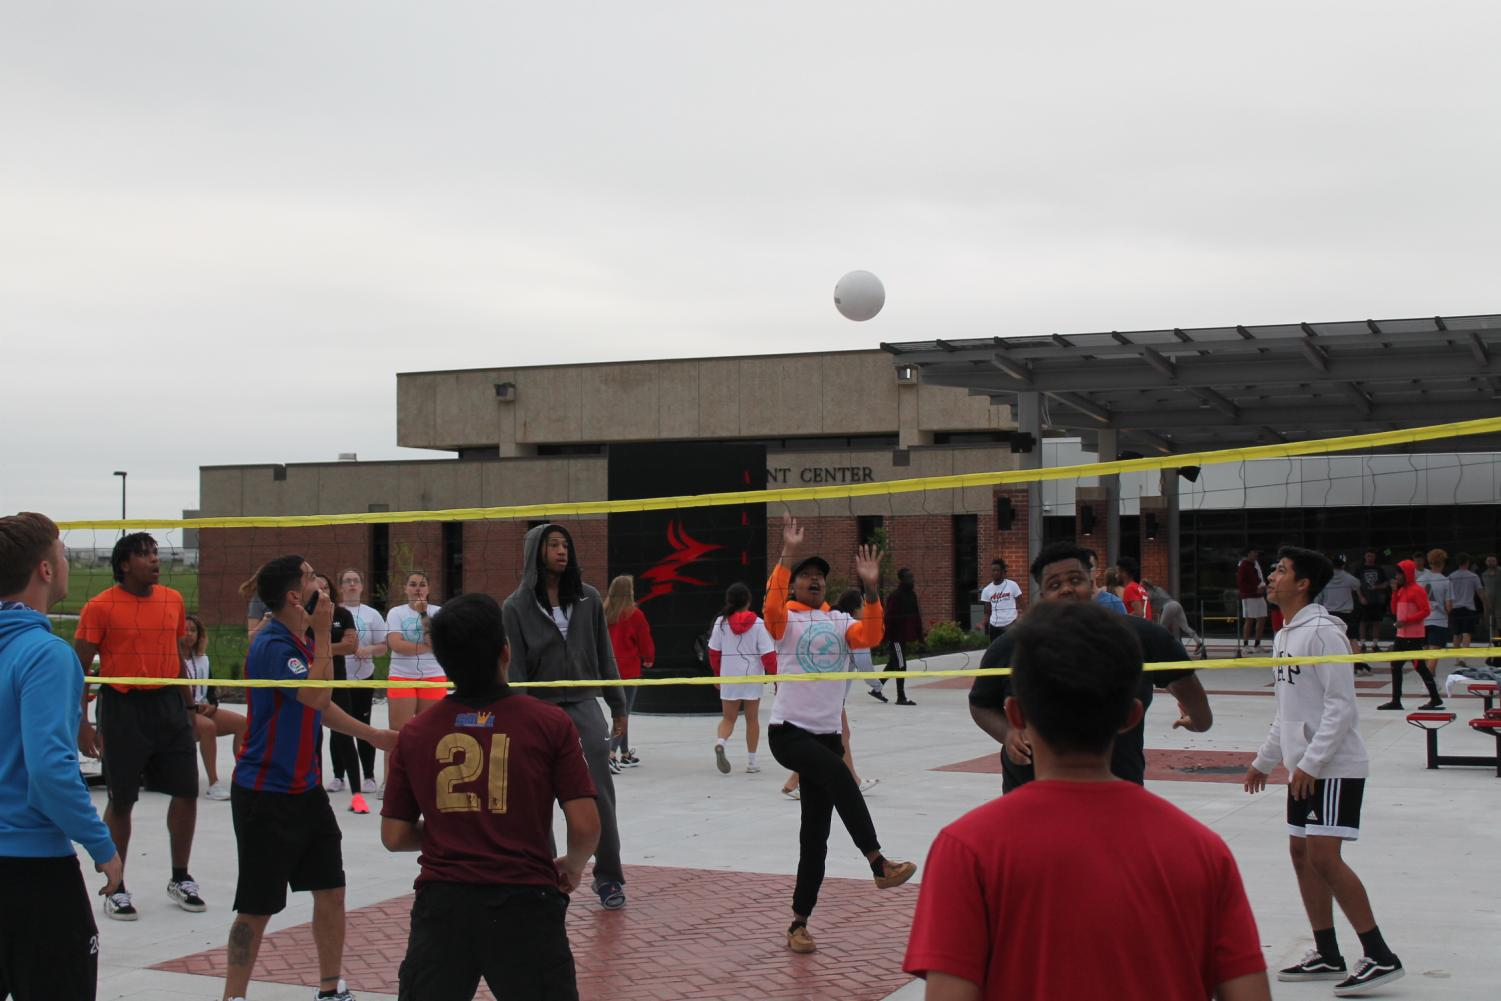 A+variety+of+Allen+students+participated+in+activities+at+the+college%27s+first+Sophomore+Send-Off+last+Wednesday%2C+including+playing+volleyball+in+the+Student+Center+courtyard.